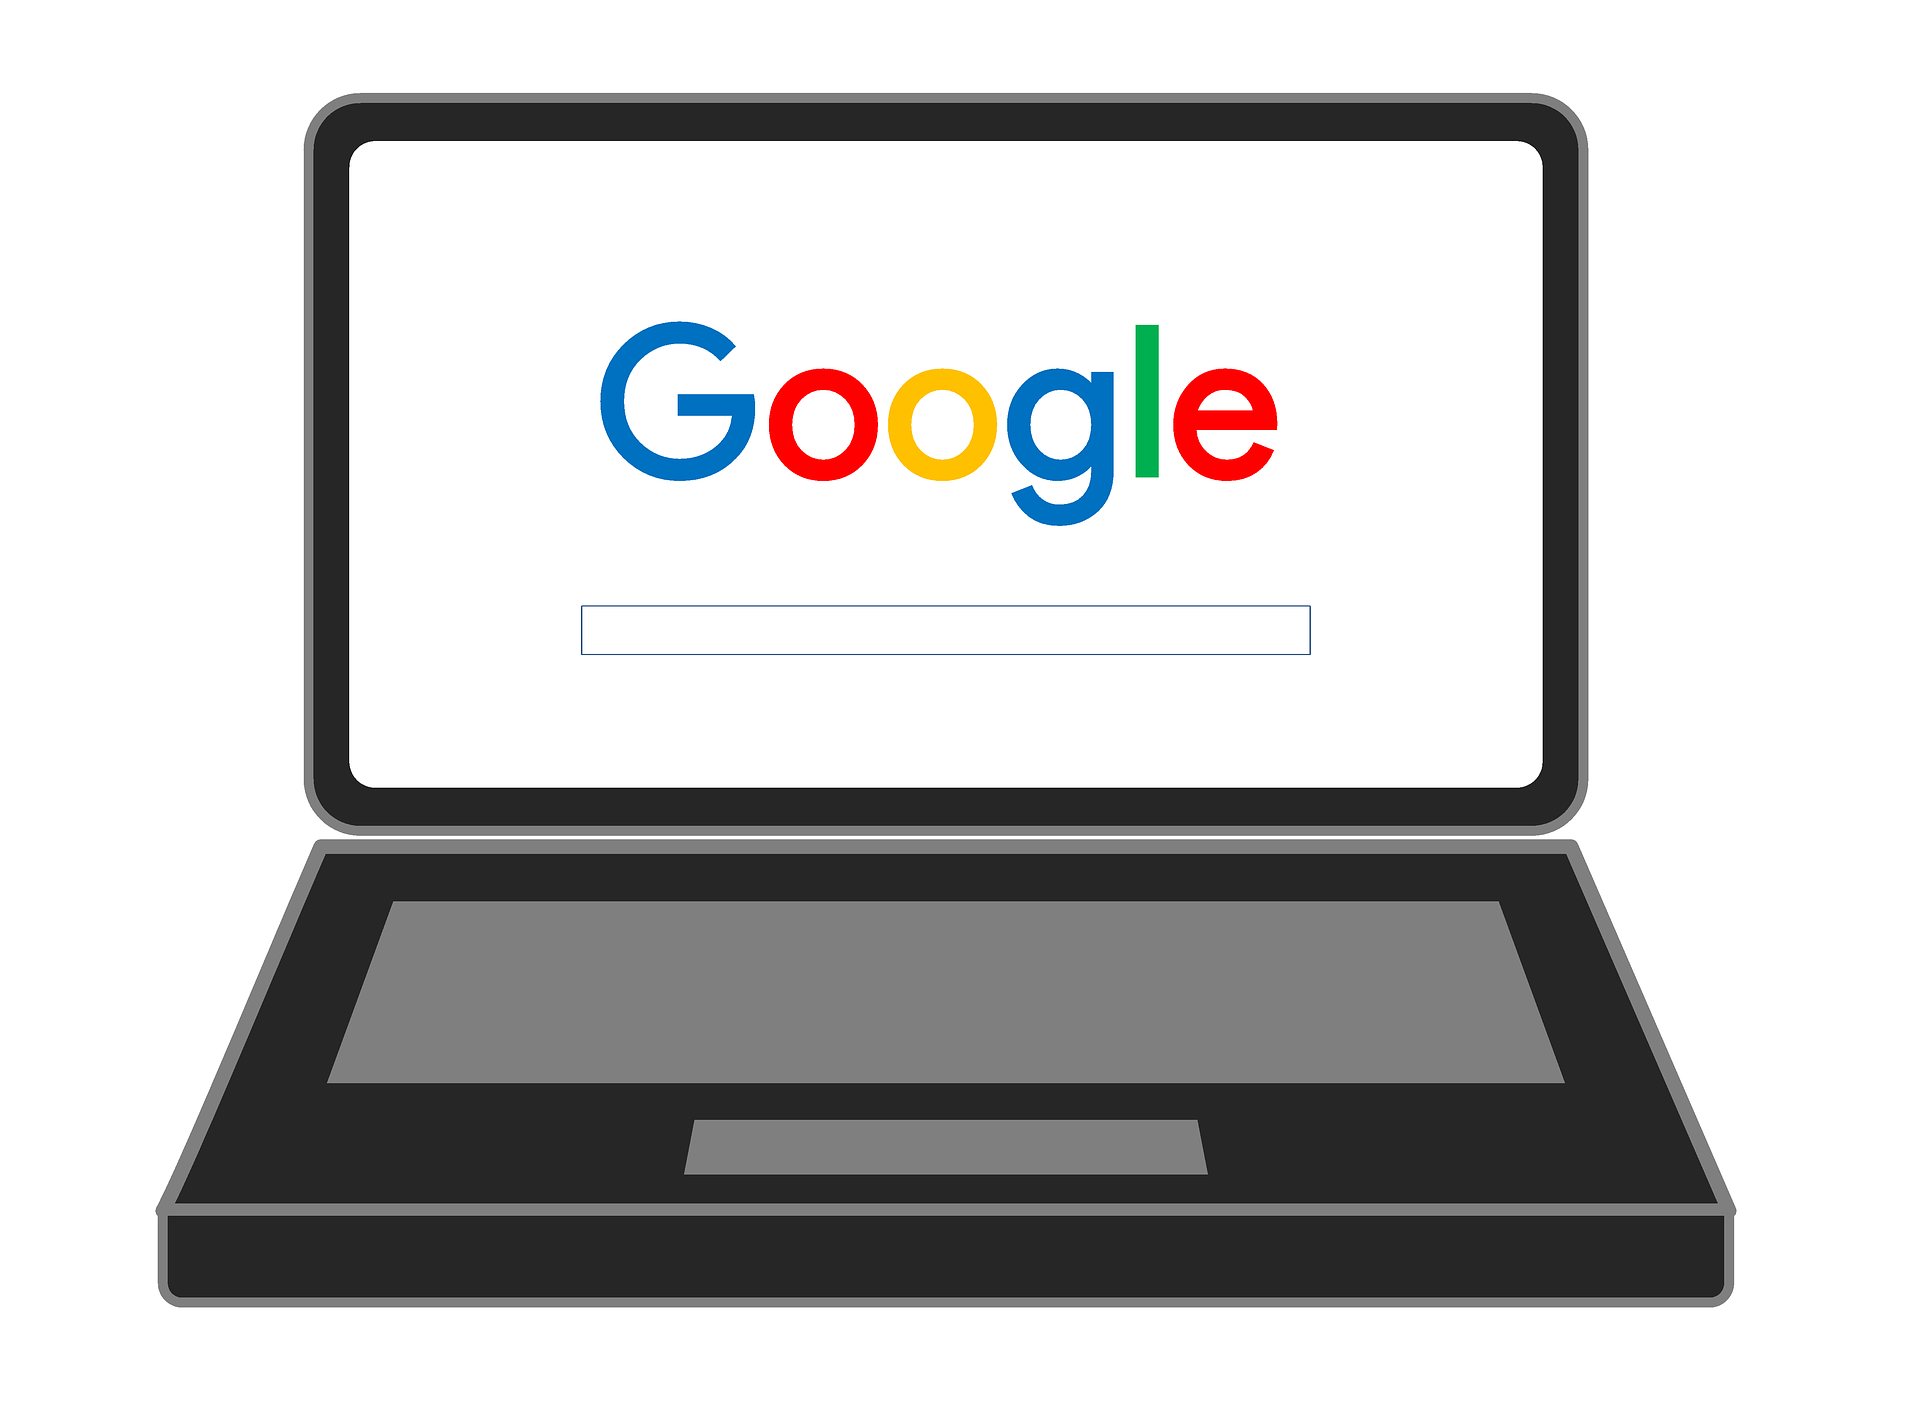 Google introduces new search features to facilitate virtual healthcare